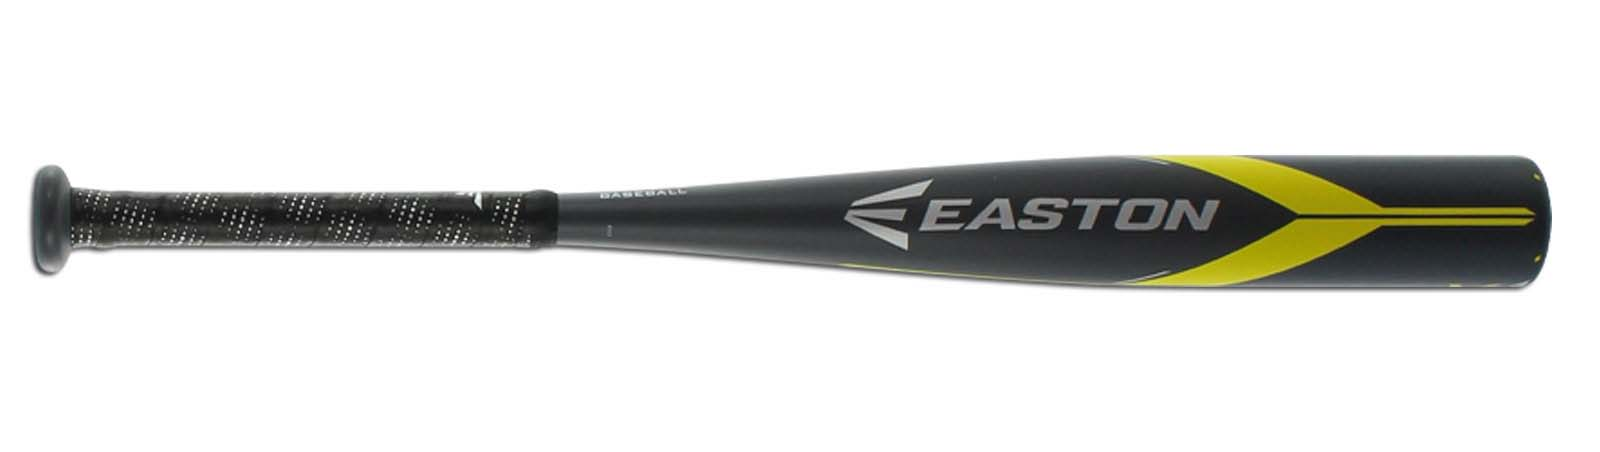 Easton Ghost X USA Tee Ball Bat.jpg